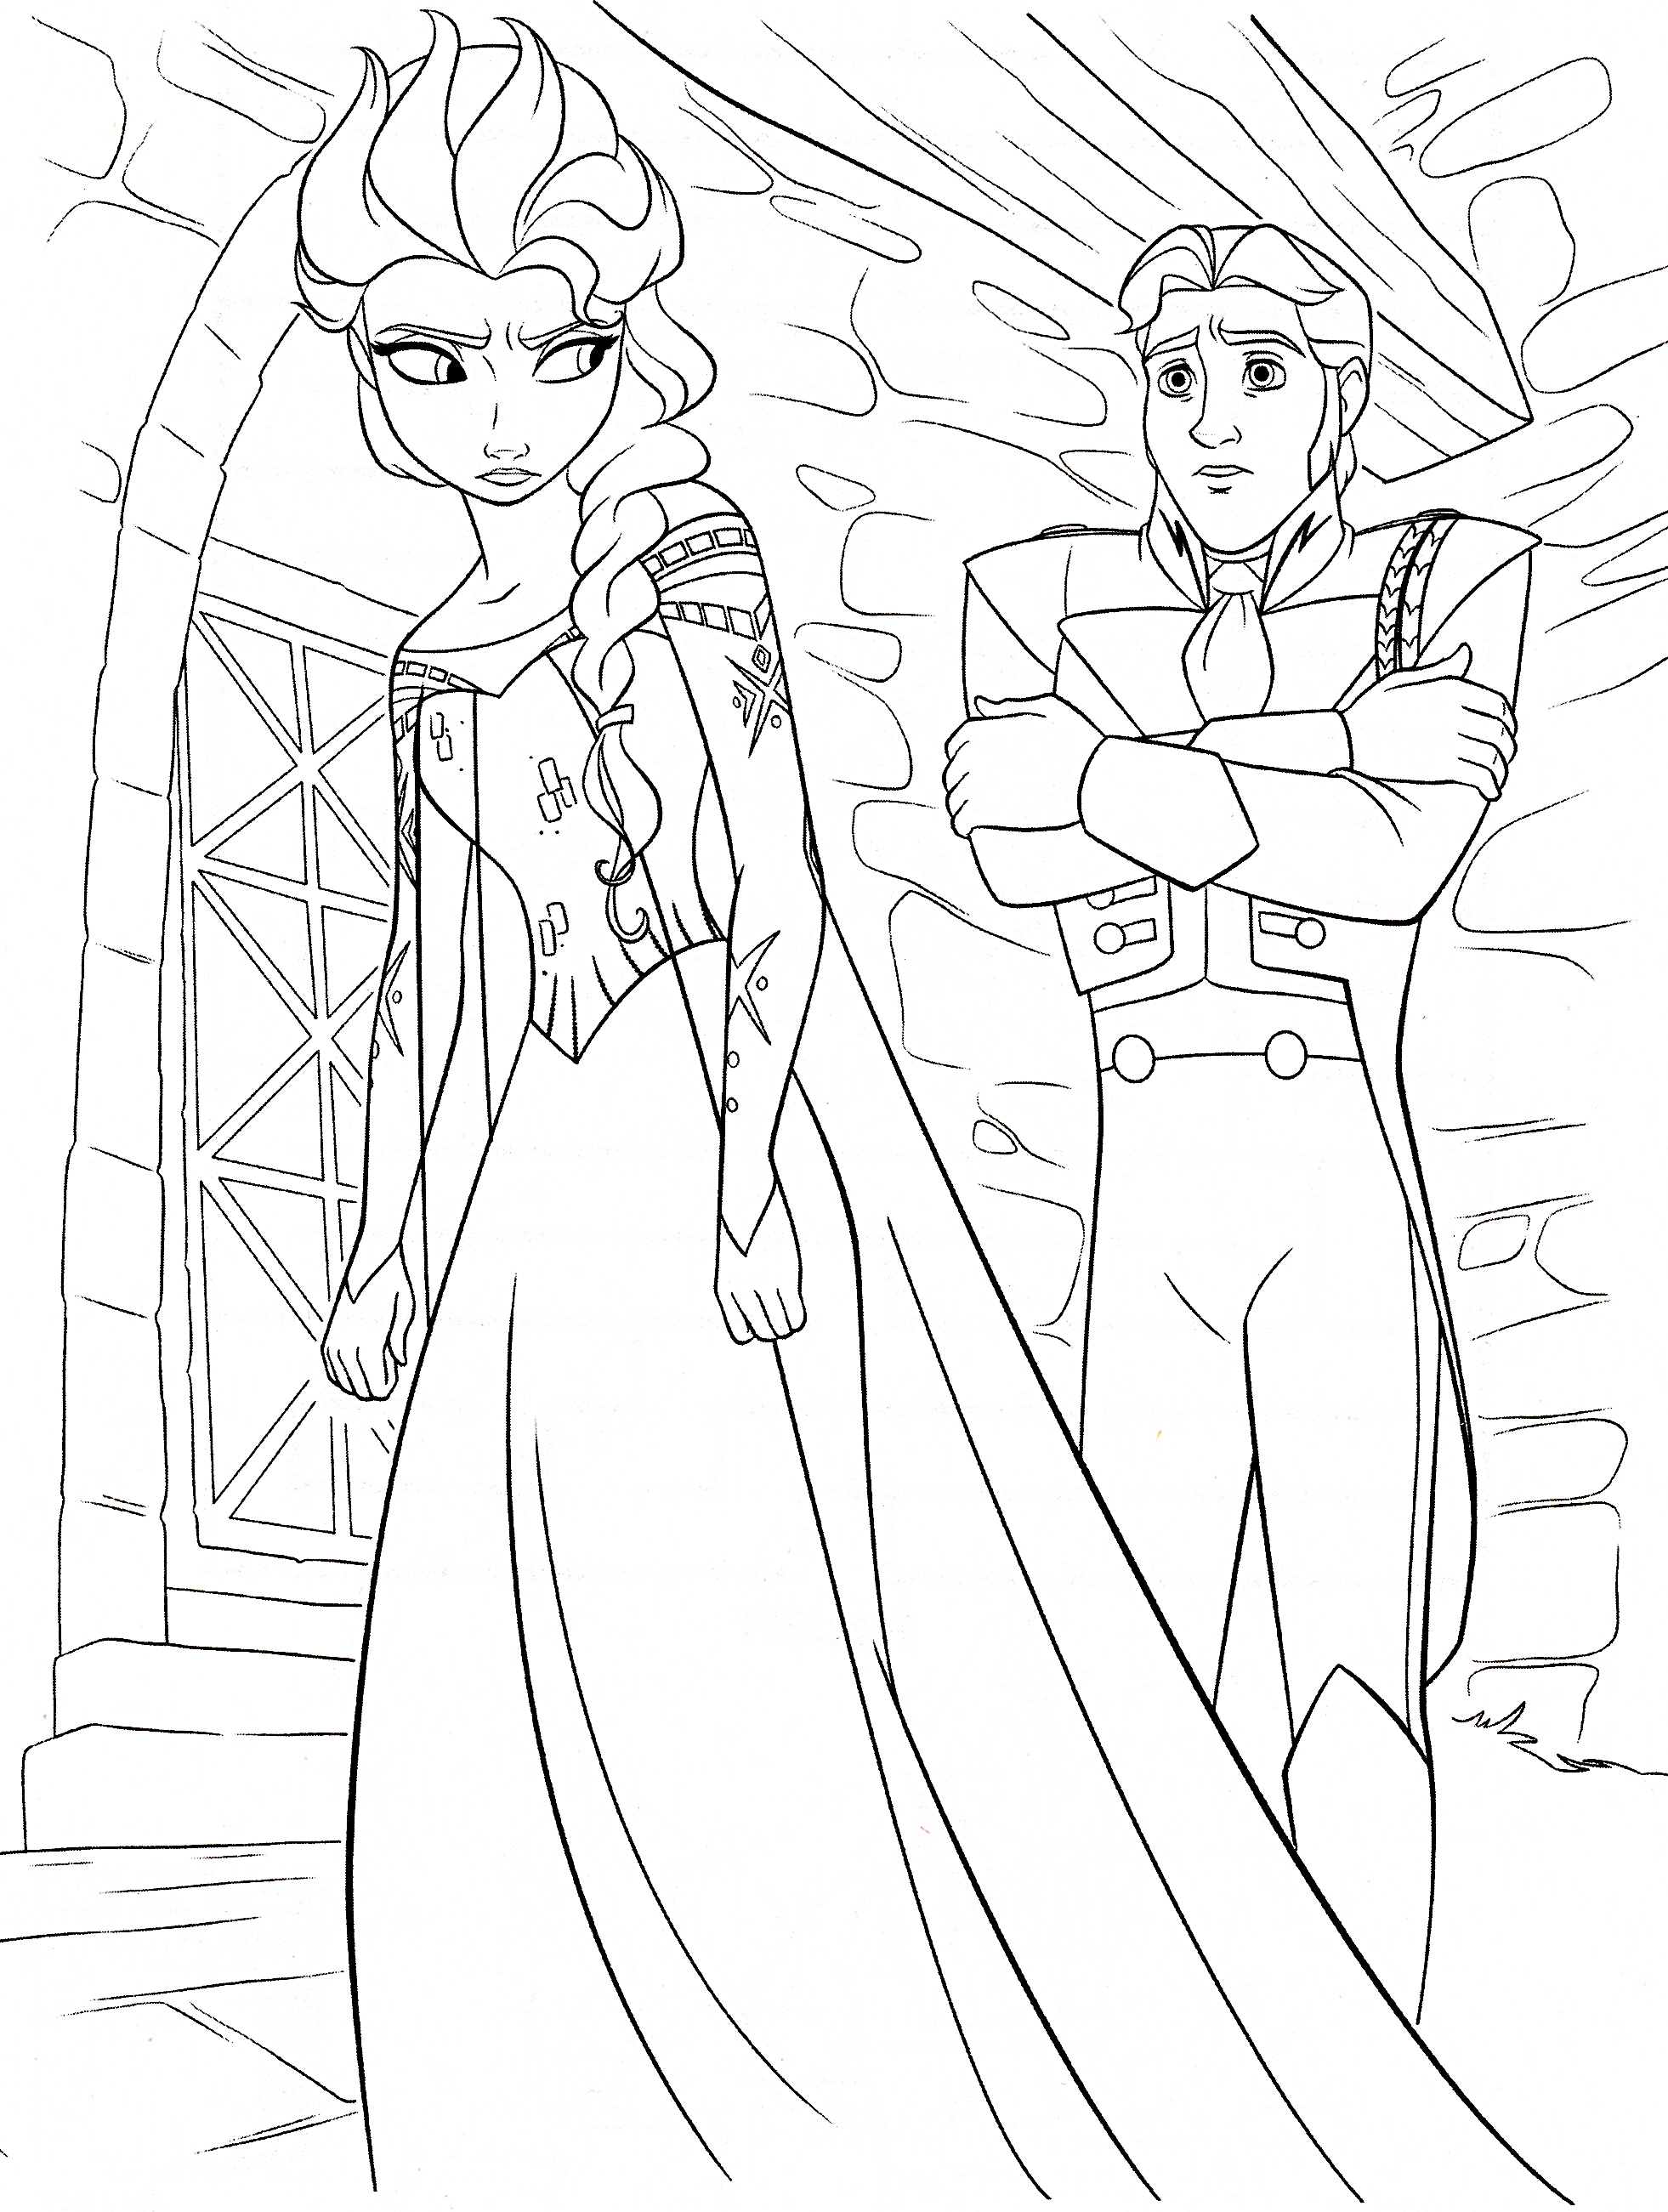 Disney's Frozen Colouring Pages   Cute Kawaii Resources